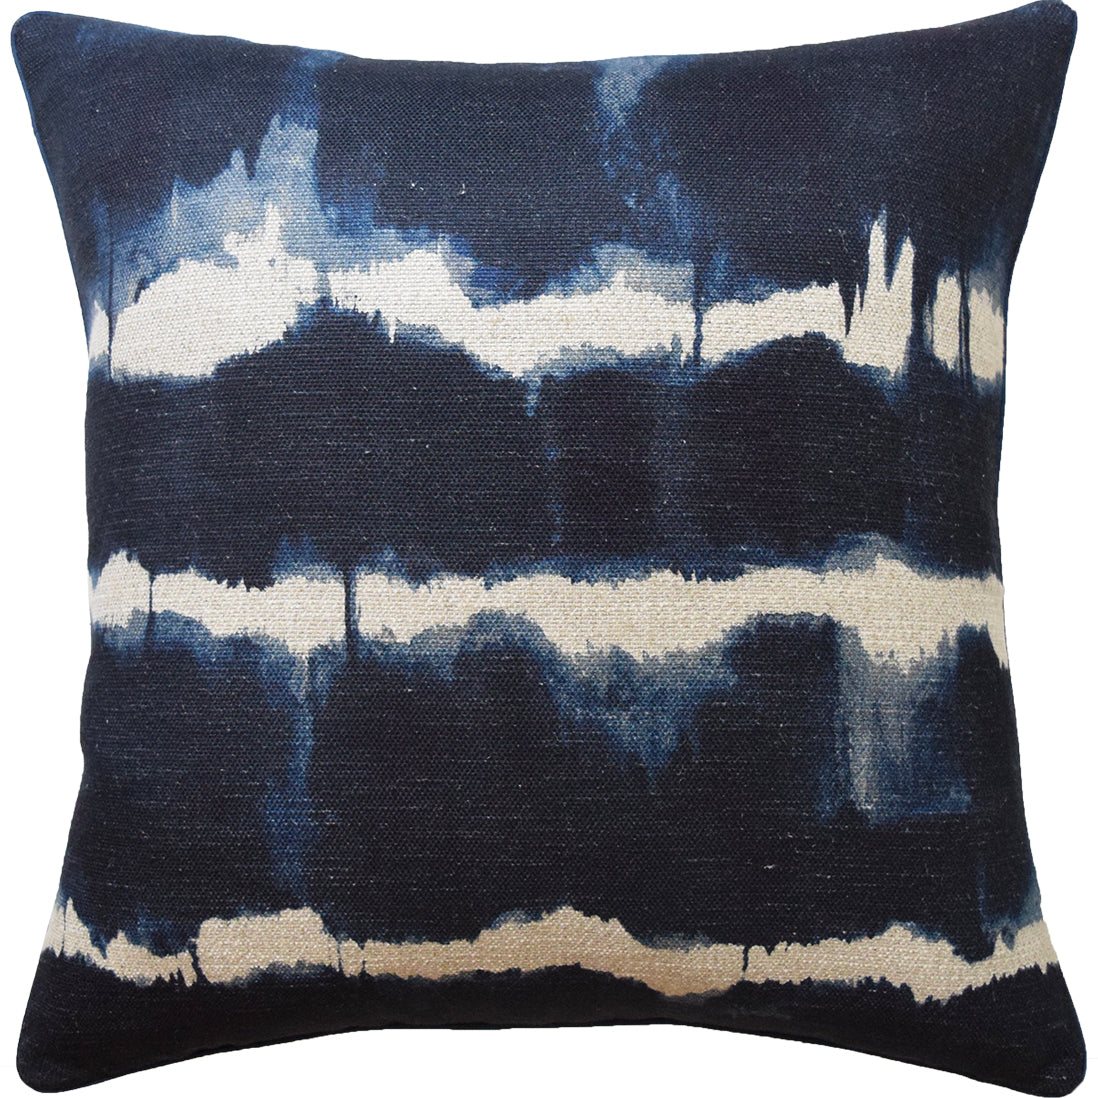 Ryan Studio Baturi Pillow in Indigo